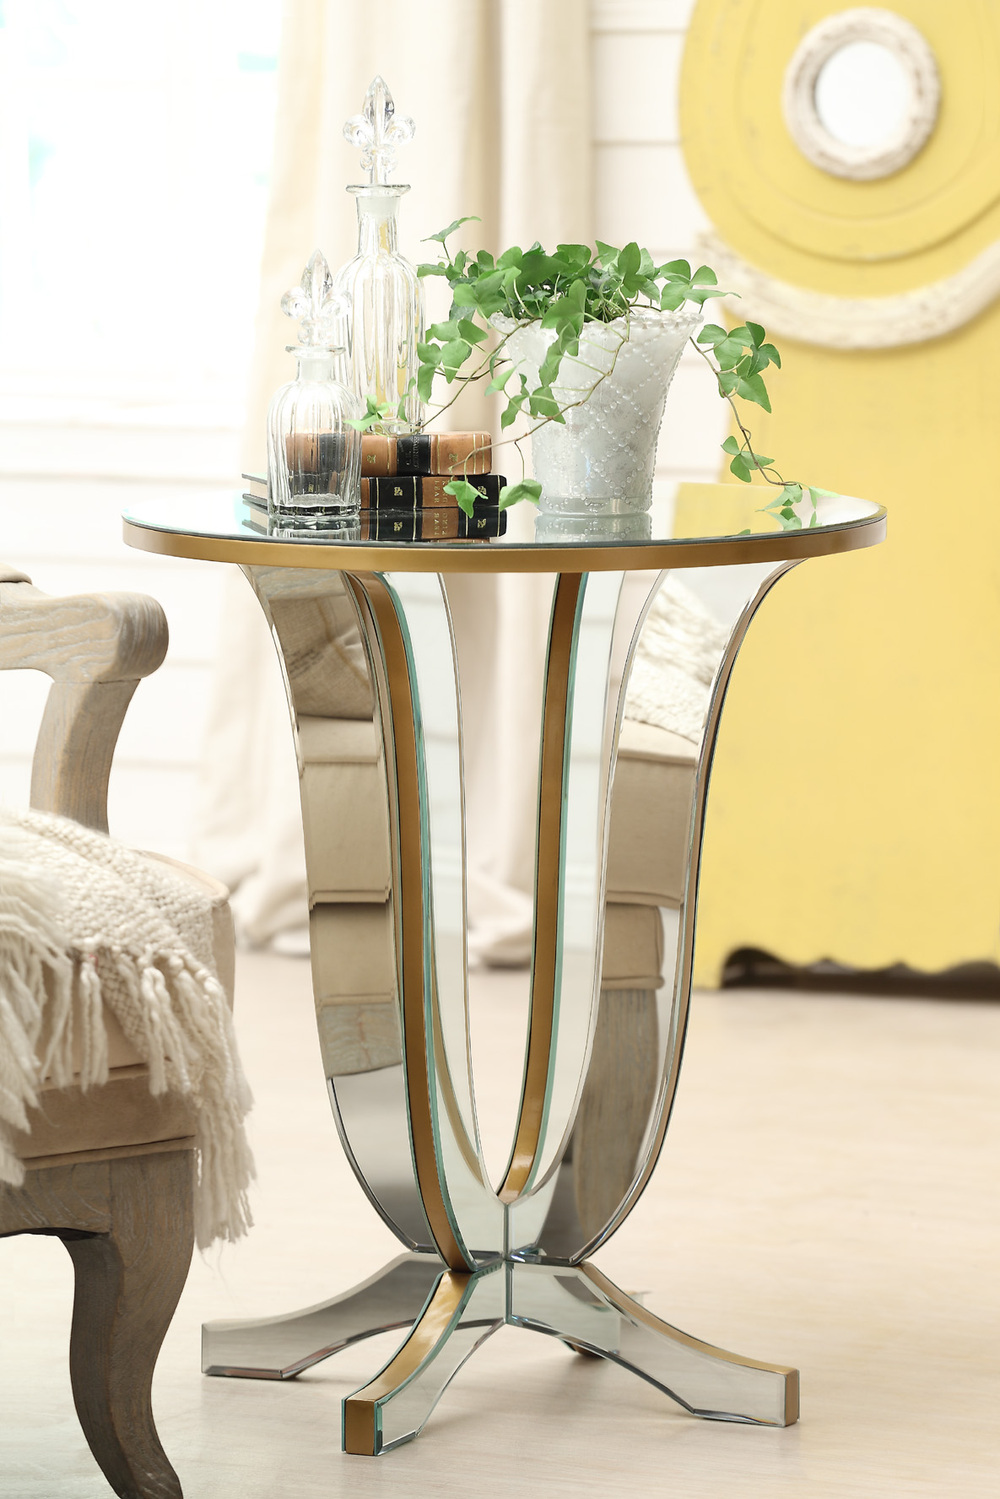 astonishing small accent tables for living room table gold furniture modern kijiji white glass antique decorative target round outdoor full size maple top dale tiffany aldridge